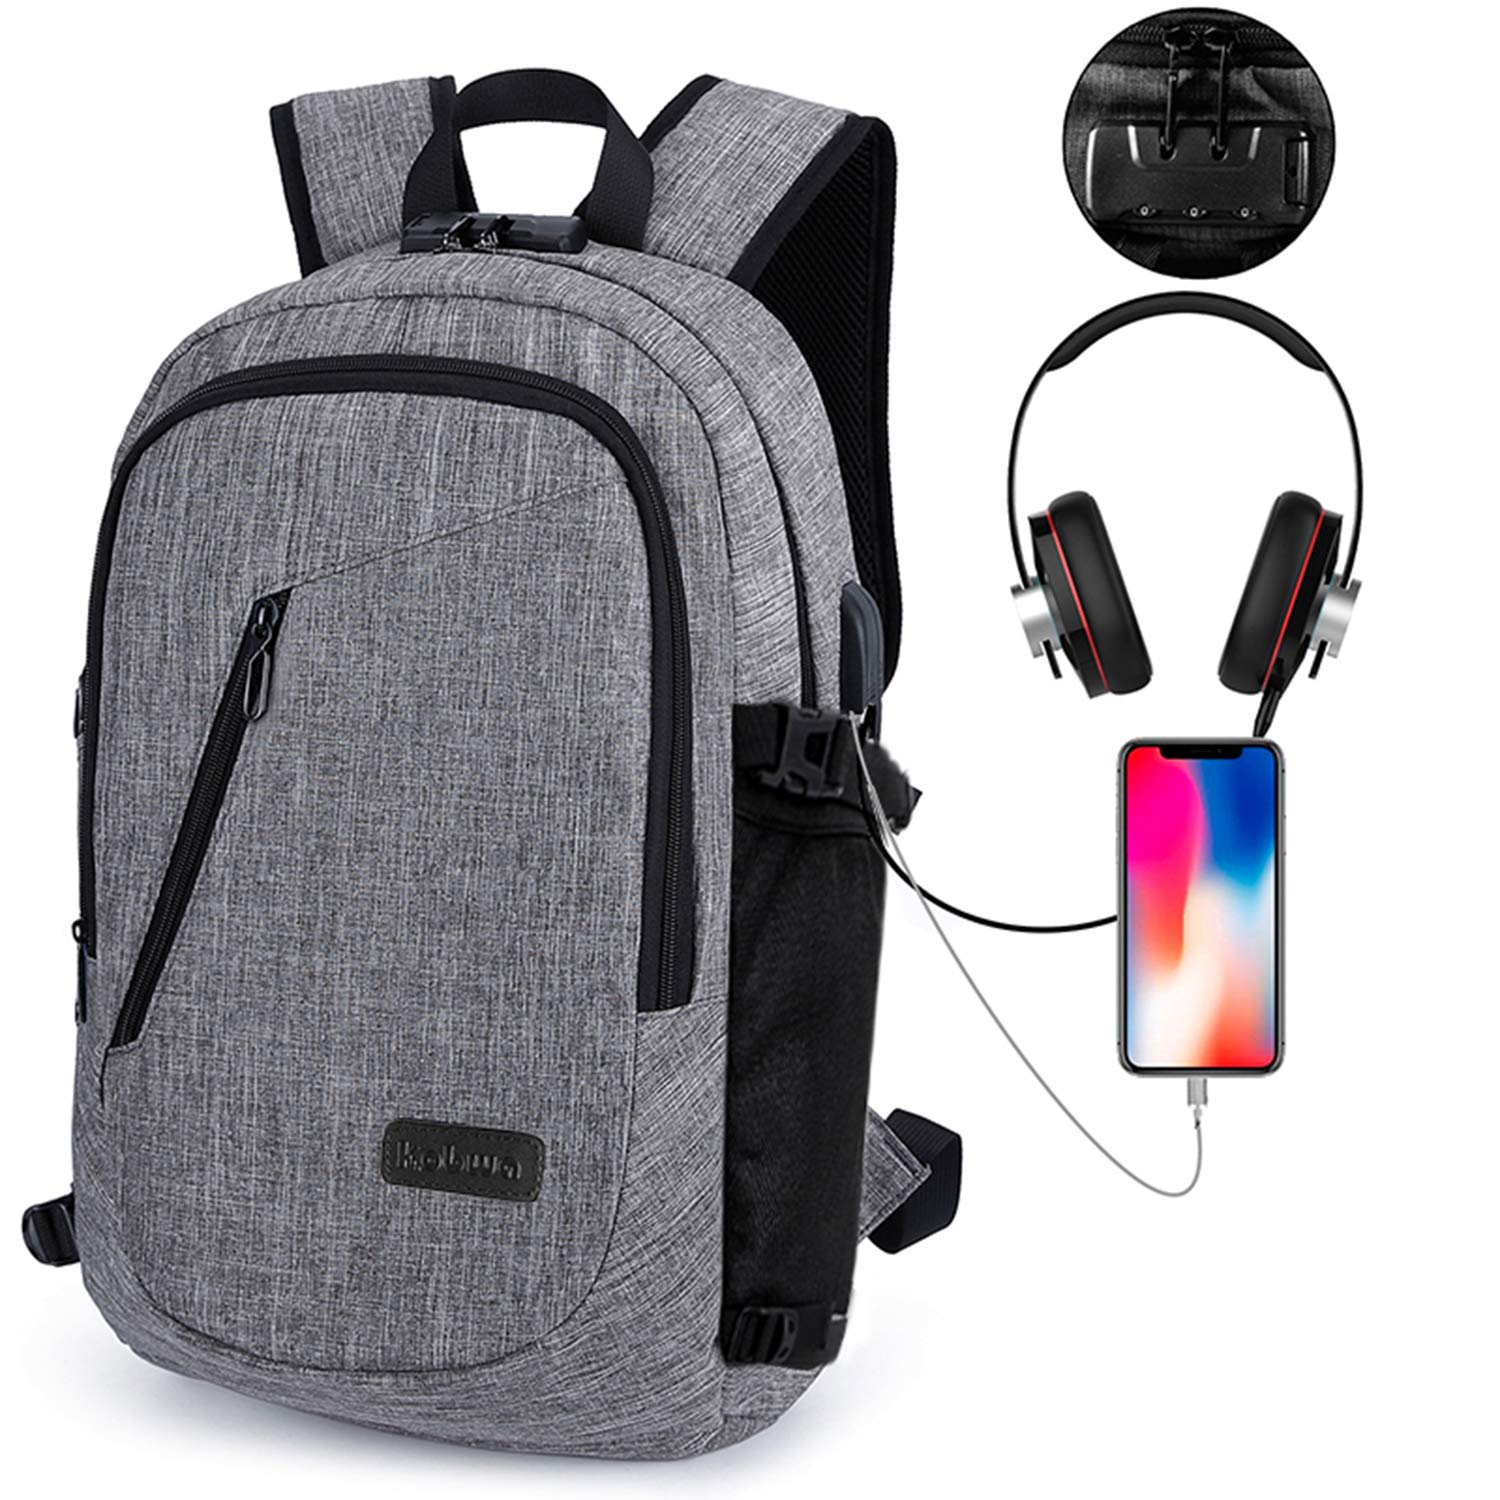 Laptop Backpack, Kobwa Anti-theft Business Slim Computer Bag With USB Charging Port and Headphone Port For Women and Men, Fits Up to 15.6 Inch Laptop Notebook and Tablet IPad (Grey) 6025779654012